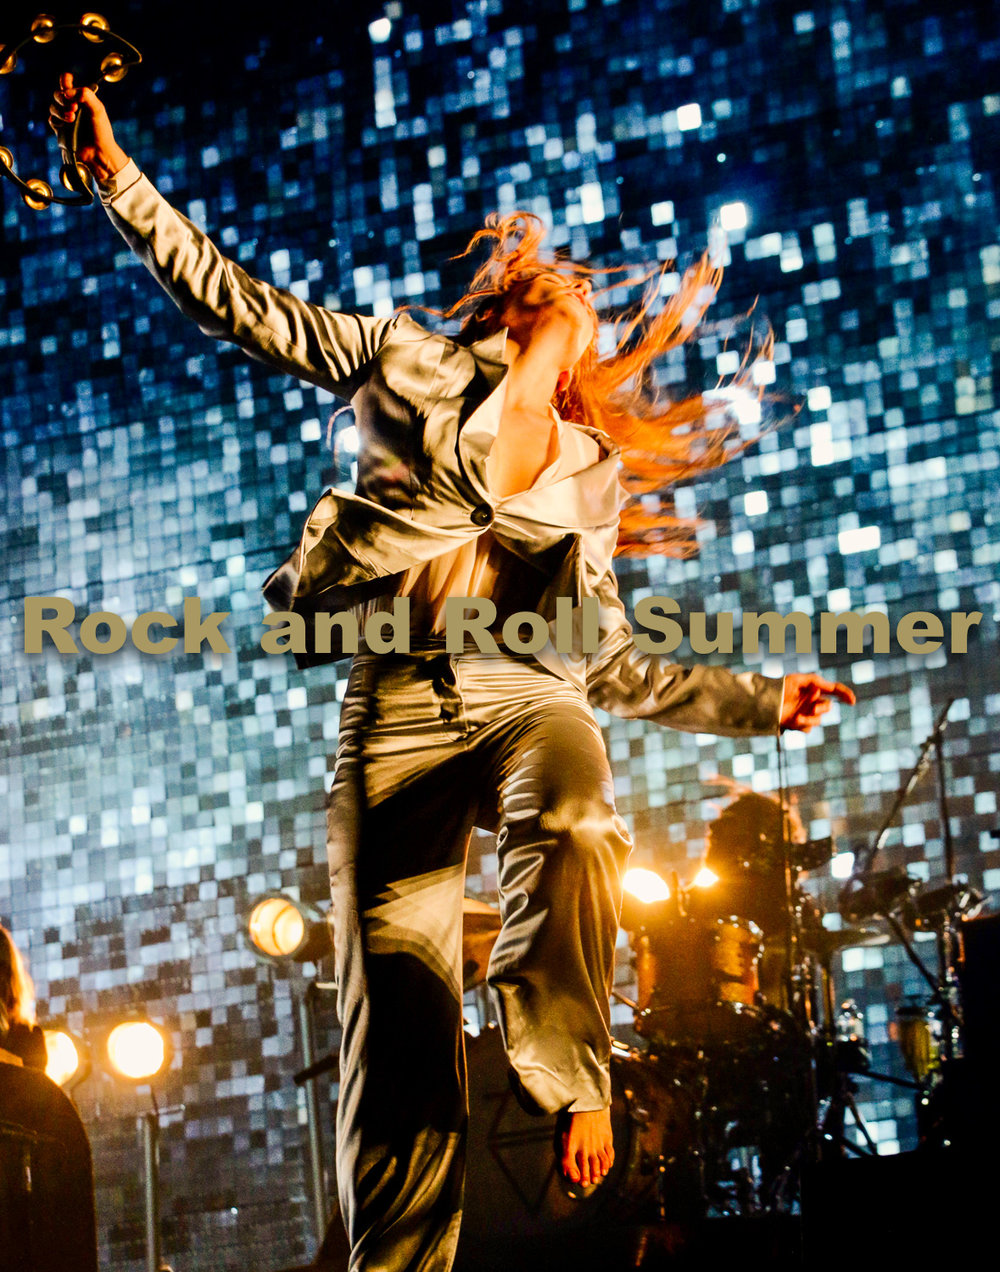 "Florence & the Machine, Chicago, IL, 2015 - Curt Baran  11""x14"" $200.00 framed / $150.00 unframed"